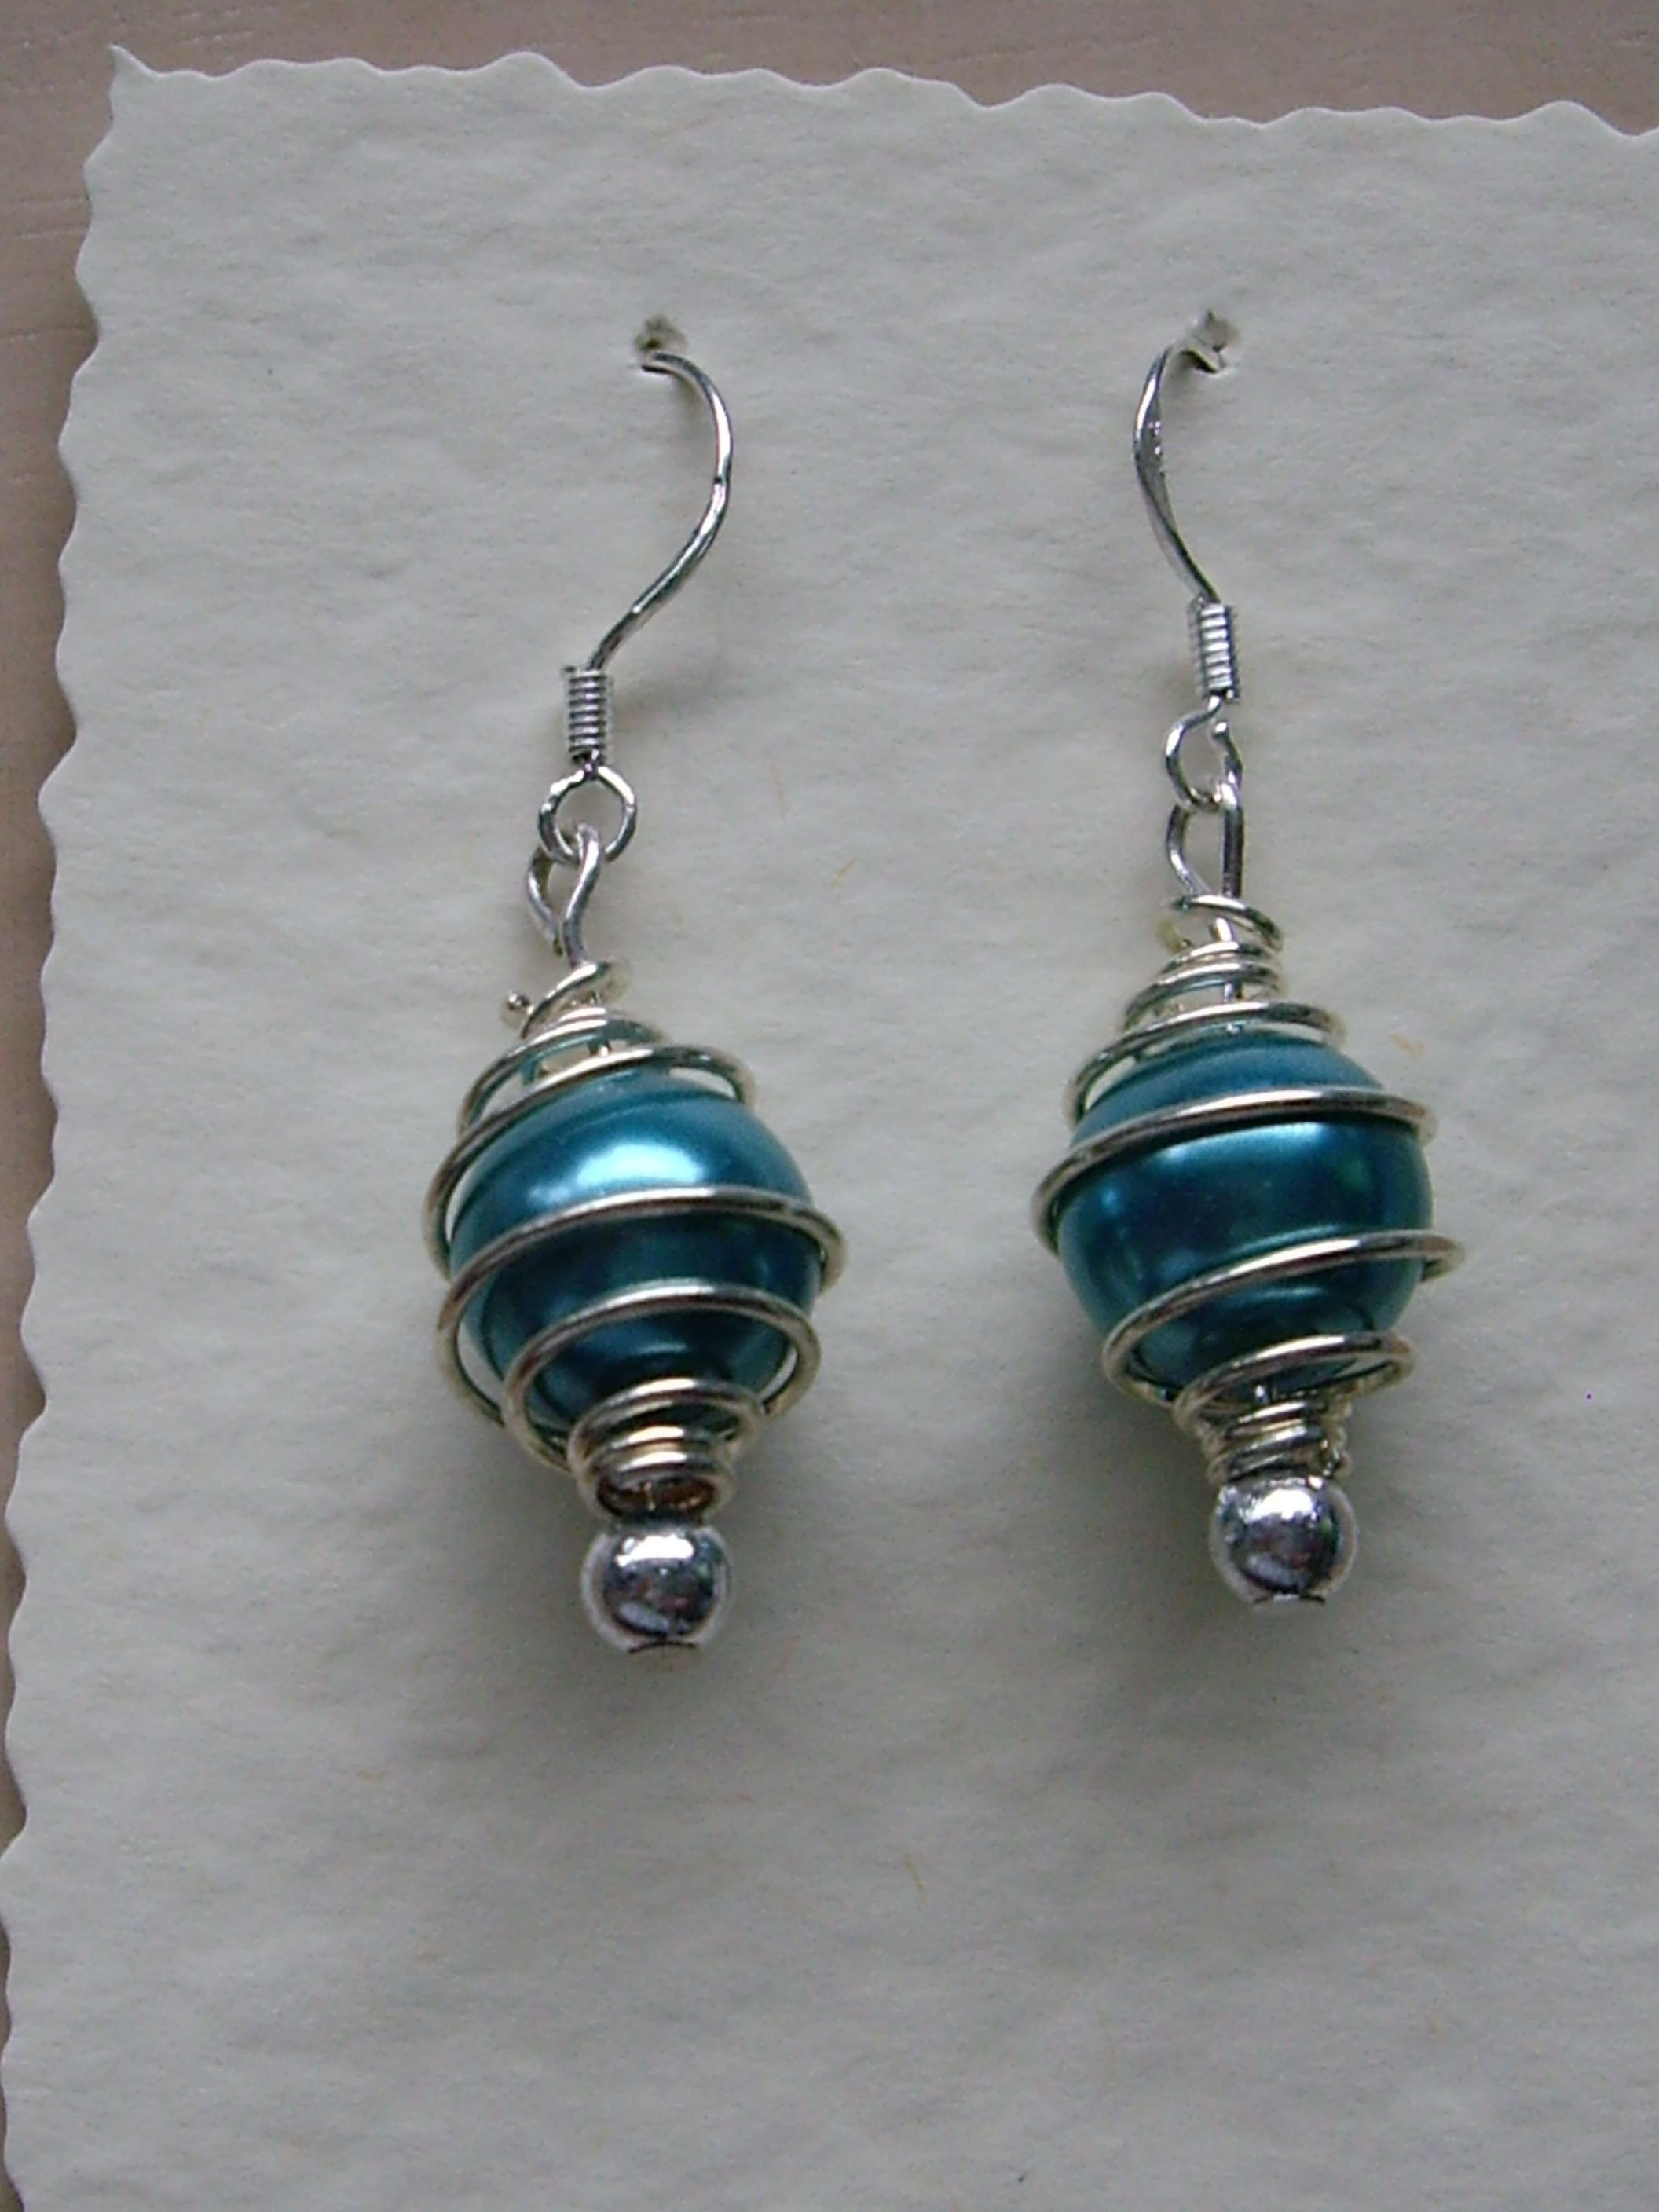 Sterling Silver Ear Wires with a silver plated cage containing a deep turquoise glass pearl. A small silver bead completes the earring